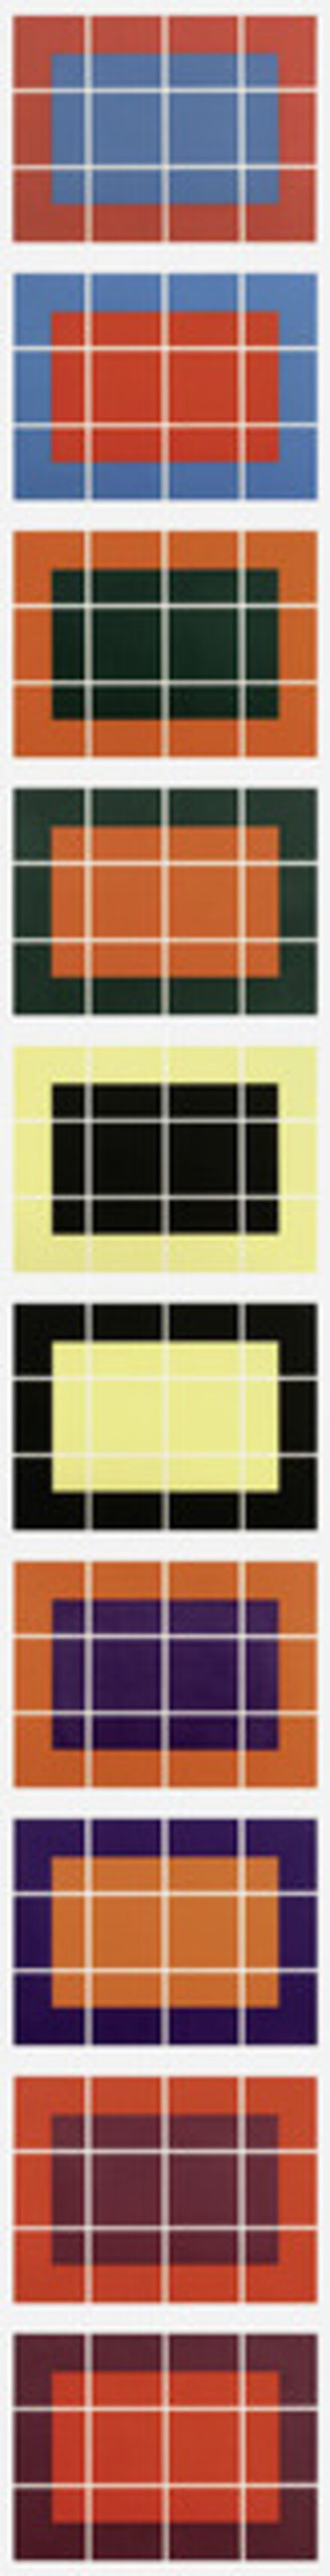 Donald Judd, 'Untitled, from portfolio: Forty Are Better Than One', 1992-93/2009